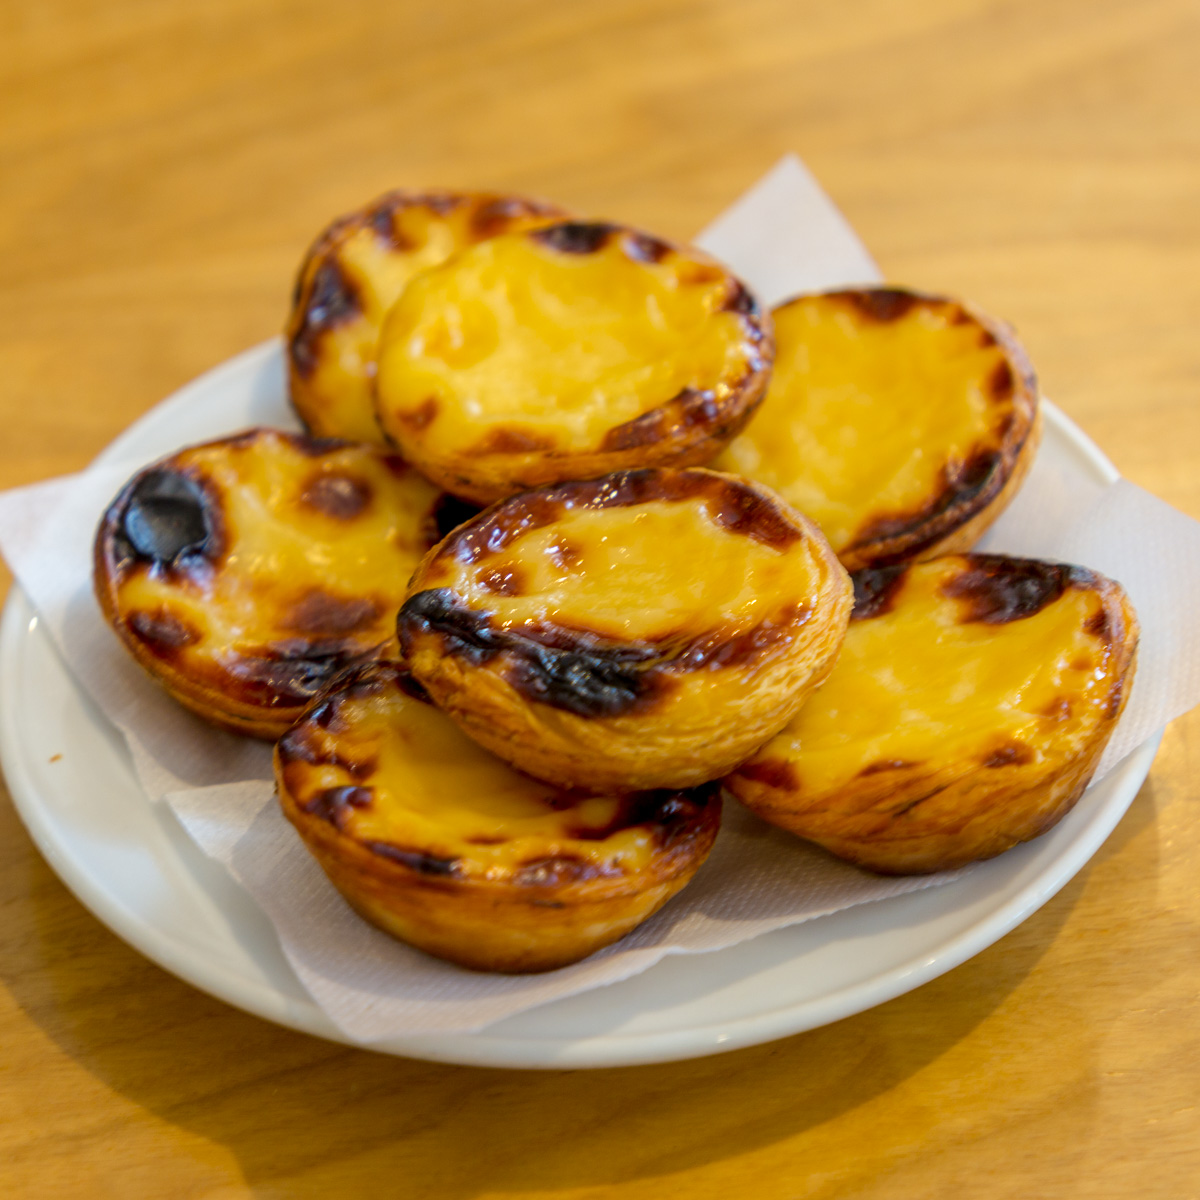 Pastéis de Nata, or Portuguese custard tart, is a Portuguese egg tart pastry dusted with cinnamon. Originally made by the Monastery of the Hieronymites it is a national treat enjoyed in former Portuguese colonies and in other countries with Portuguese populations. - WCF-7927.jpg